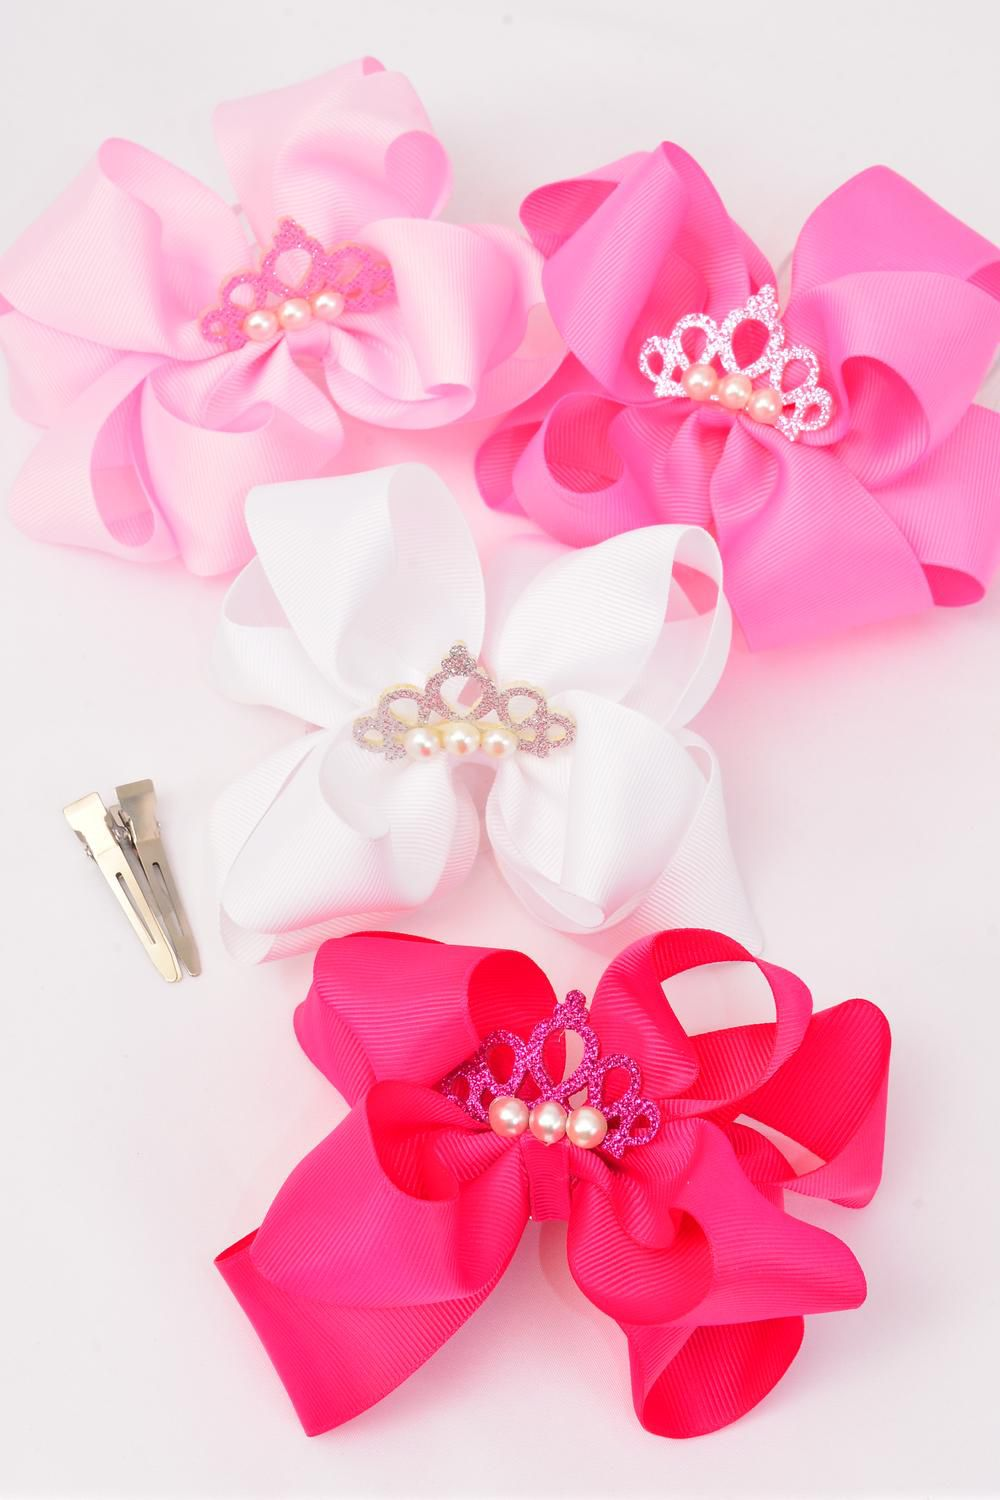 "Hair Bow Jumbo Double Layer Center Tiara Pink Mix Grosgrain Bow-tie/DZ **Pink Mix** Alligator Clip,Size-6""x 6"" Wide,3 of each Color Asst,Clip Strip & UPC Code"